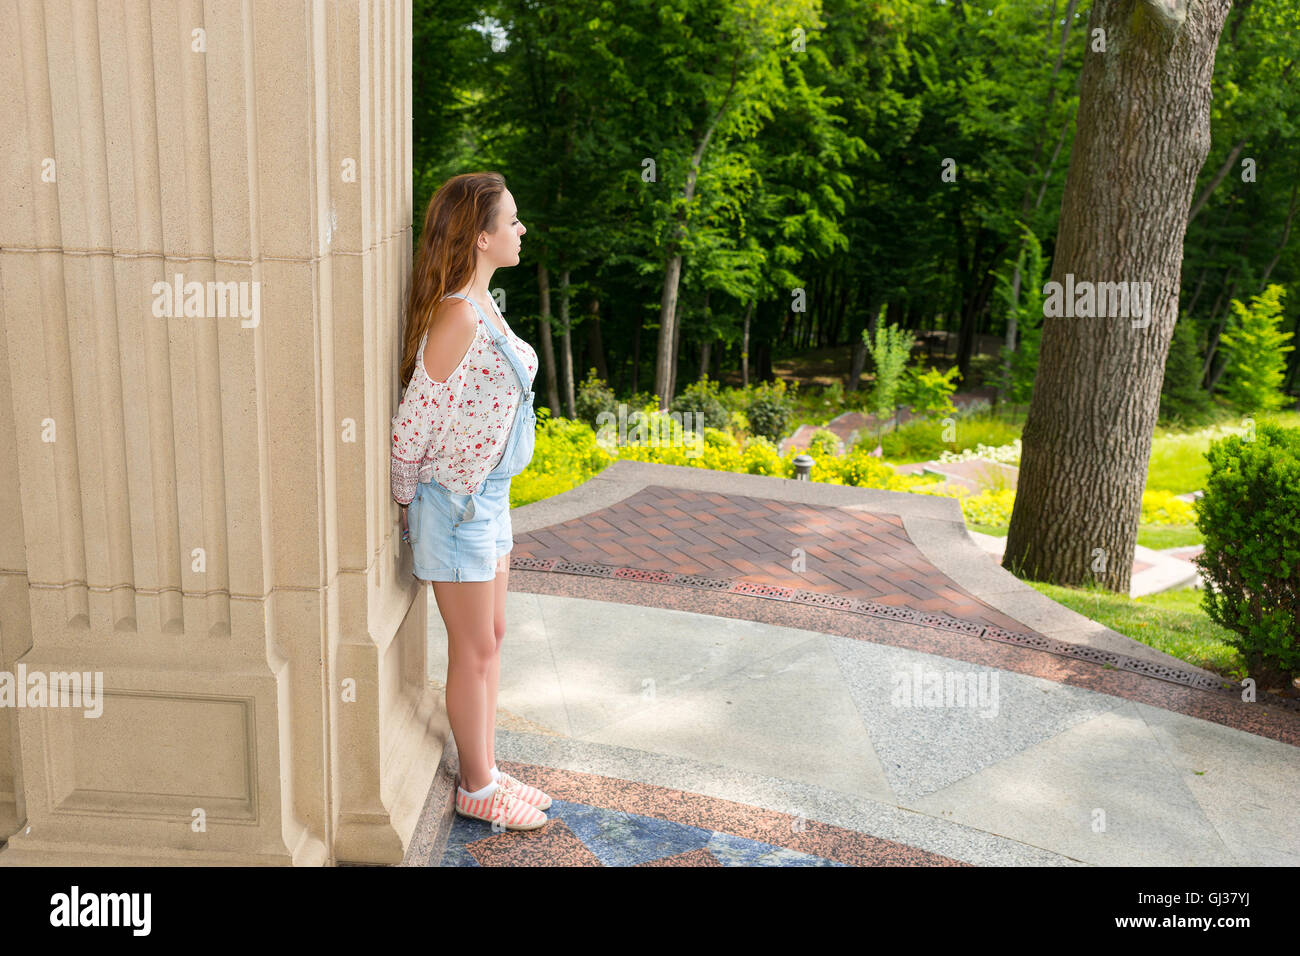 Side view on contemplative young adult woman standing near stone wall outside facing trees in park or yard - Stock Image